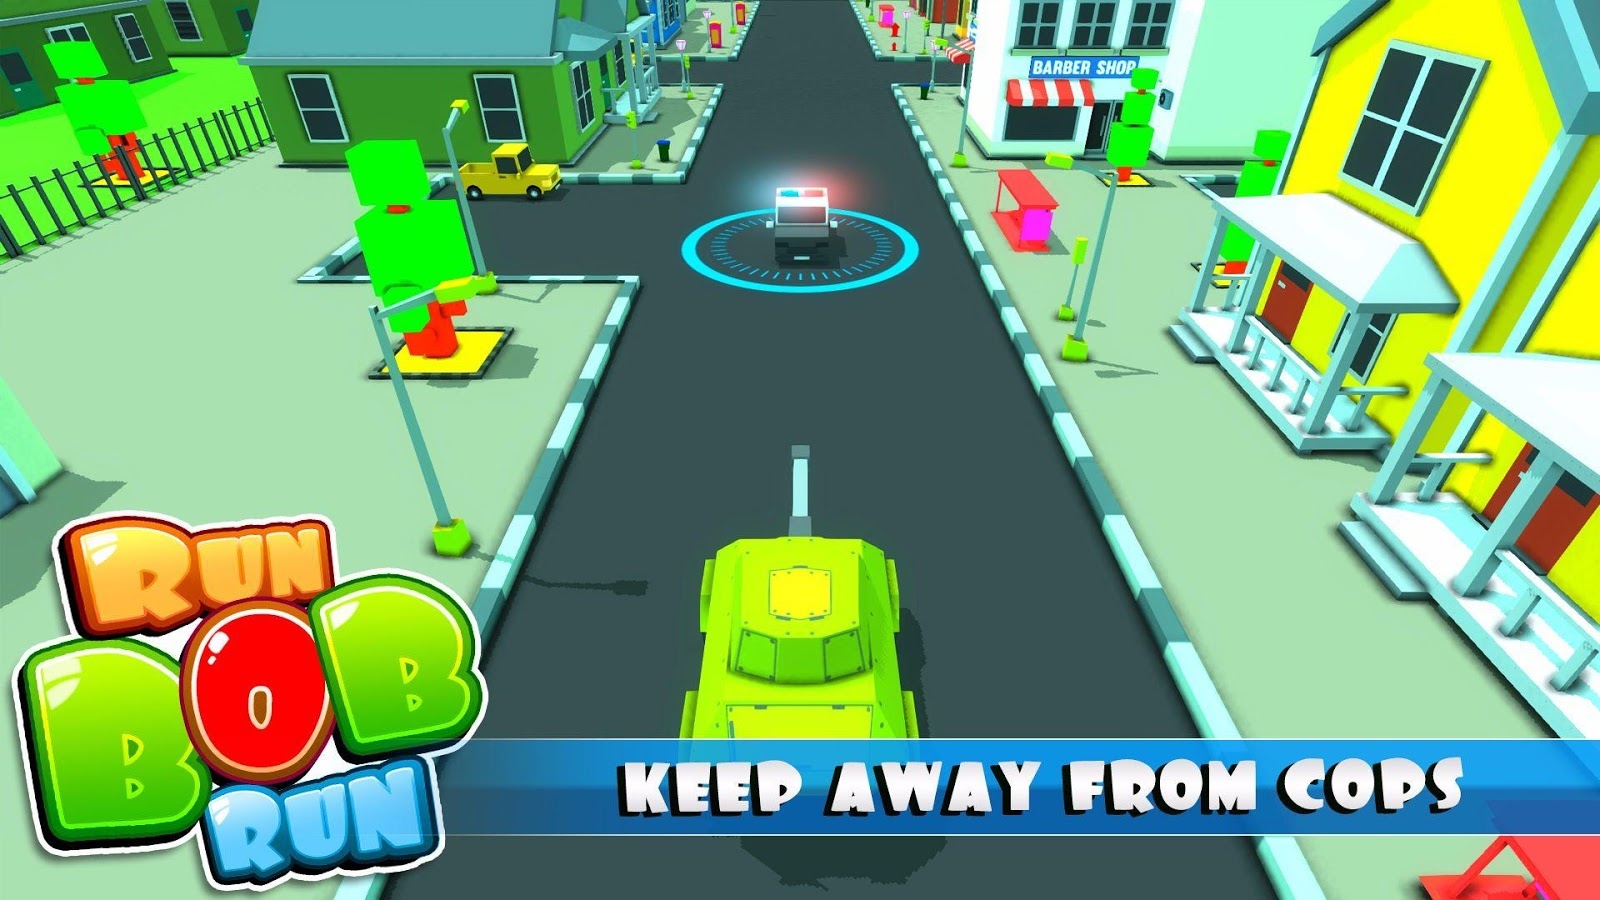 Run Bob Run Screenshot 14